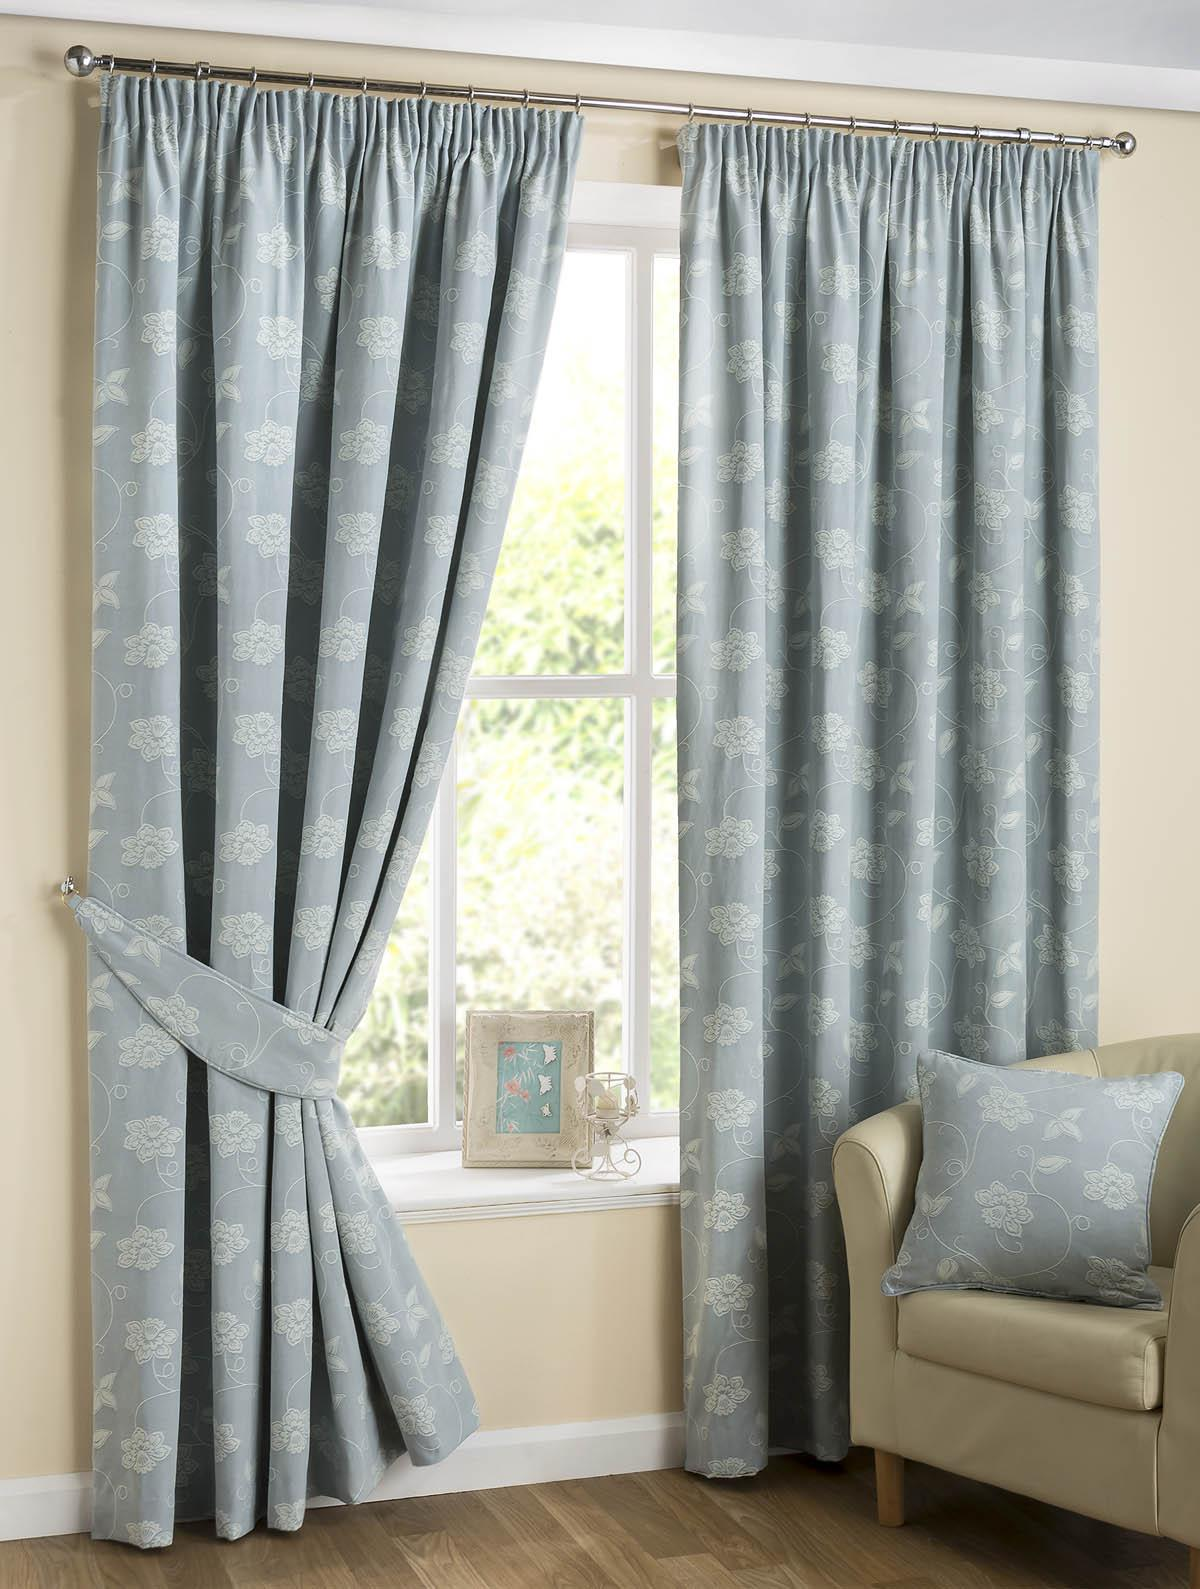 Ready Made Sheer Curtains Online Curtains Floral Shop For Cheap Curtains And Blinds And